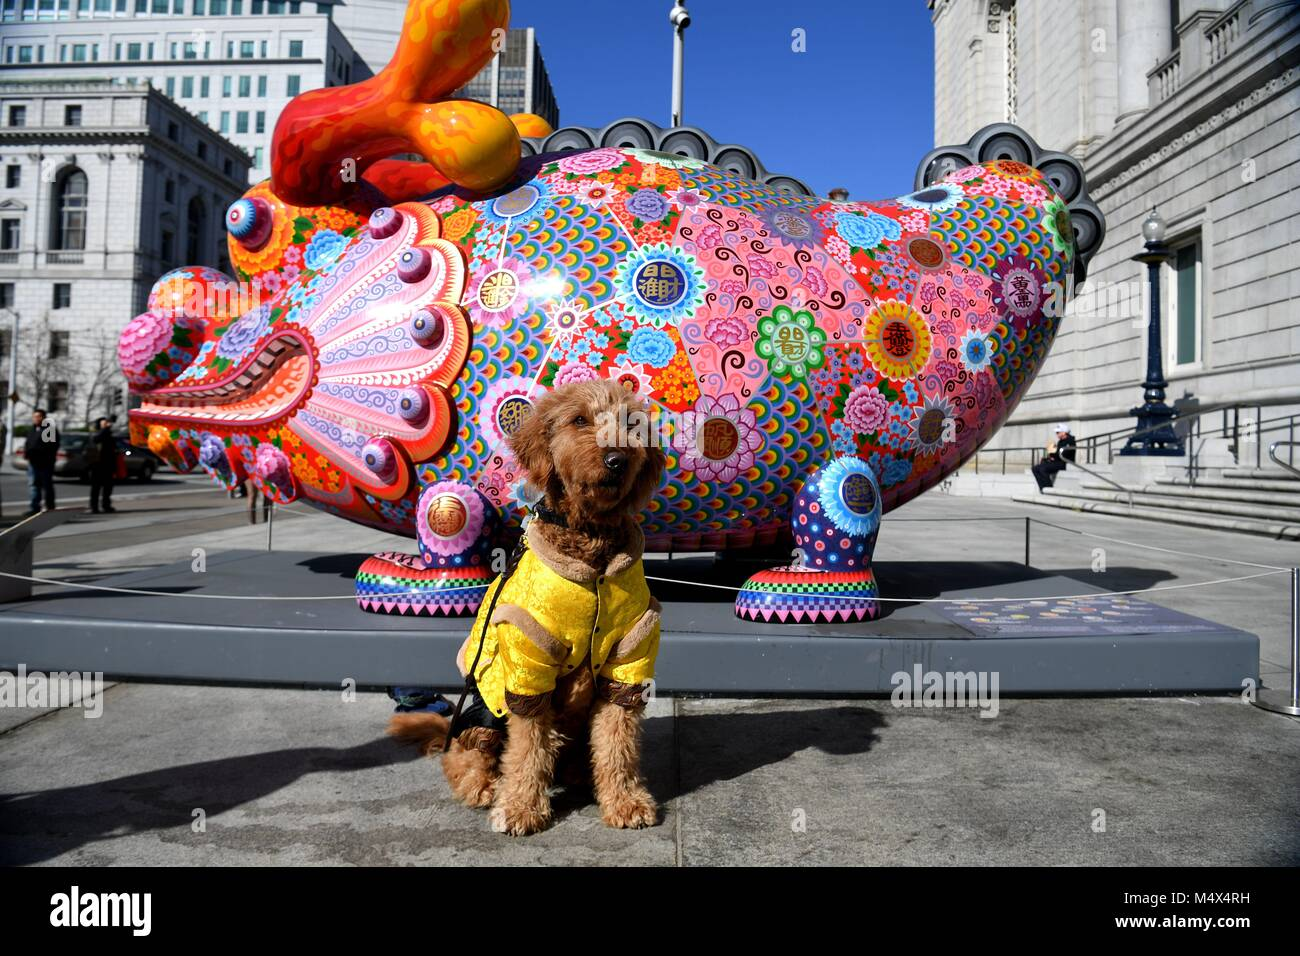 San Francisco, USA. 18th Feb, 2018. A dog sits in front of the Asian Art Museum in San Francisco, the United States, - Stock Image